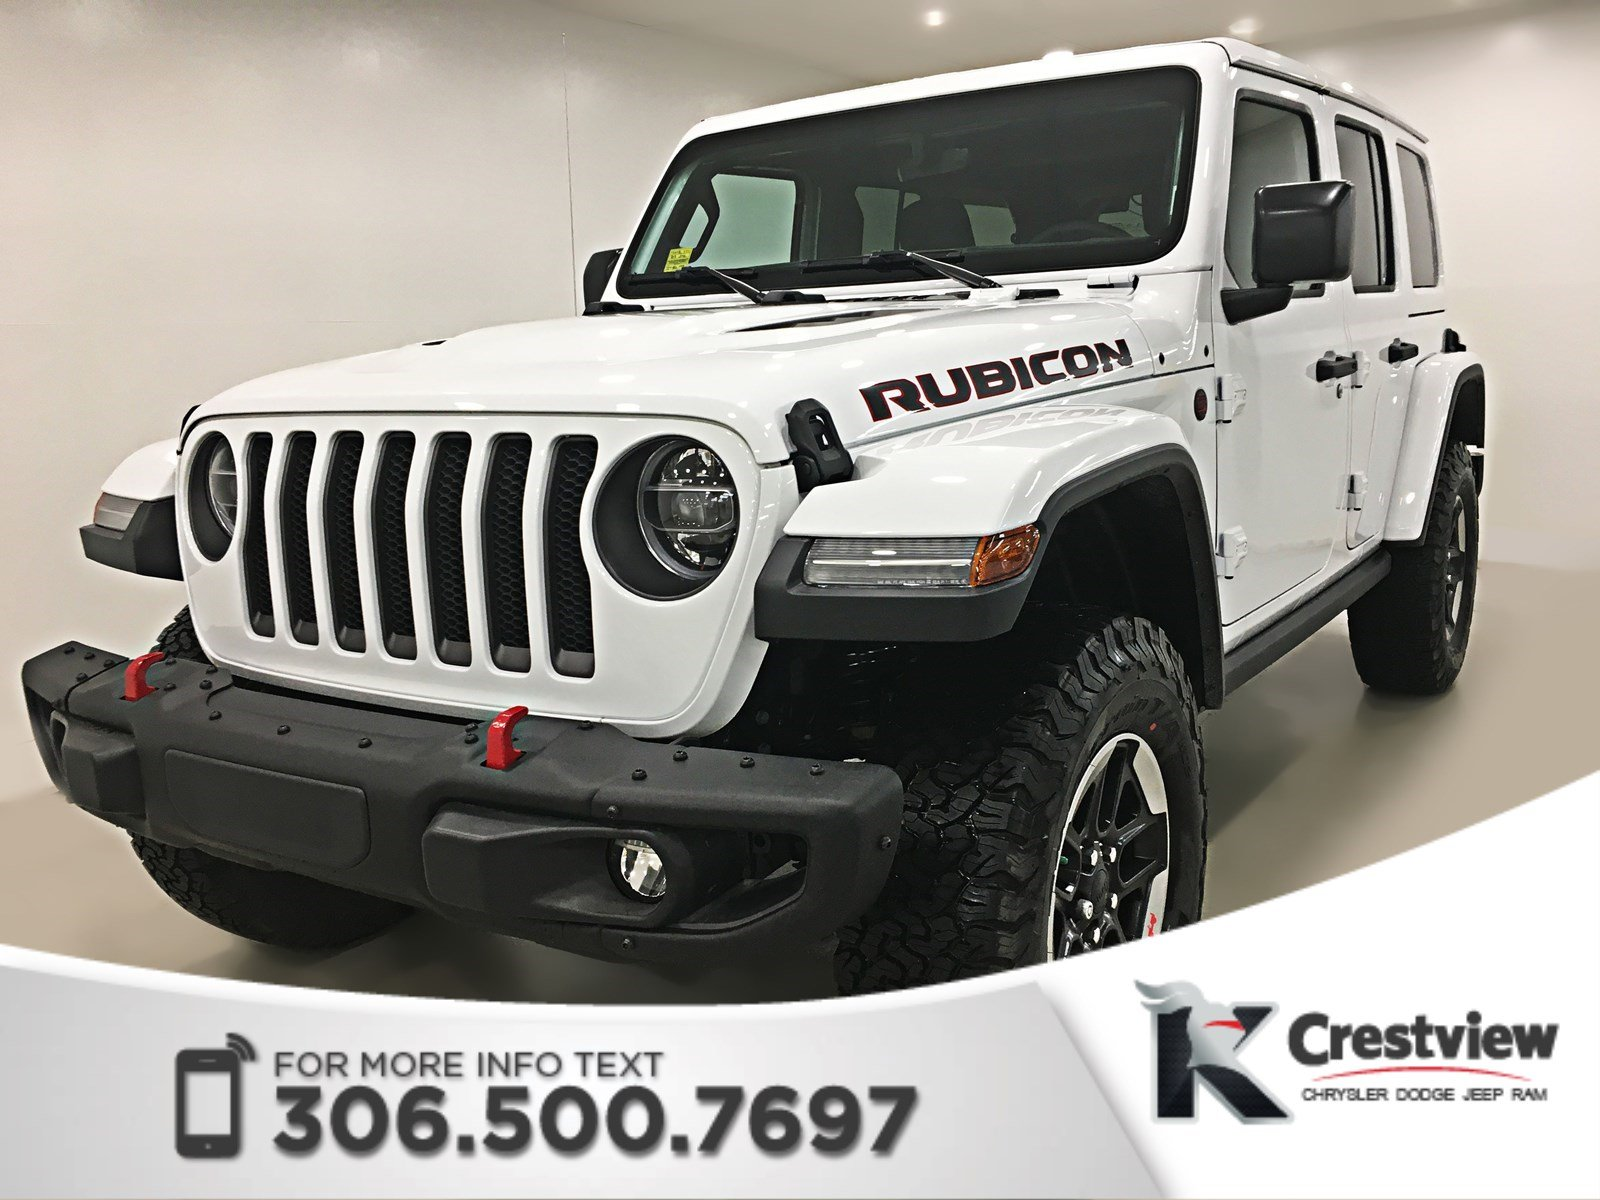 unlimited downey convertible inventory rubicon jeep wrangler pre in used owned